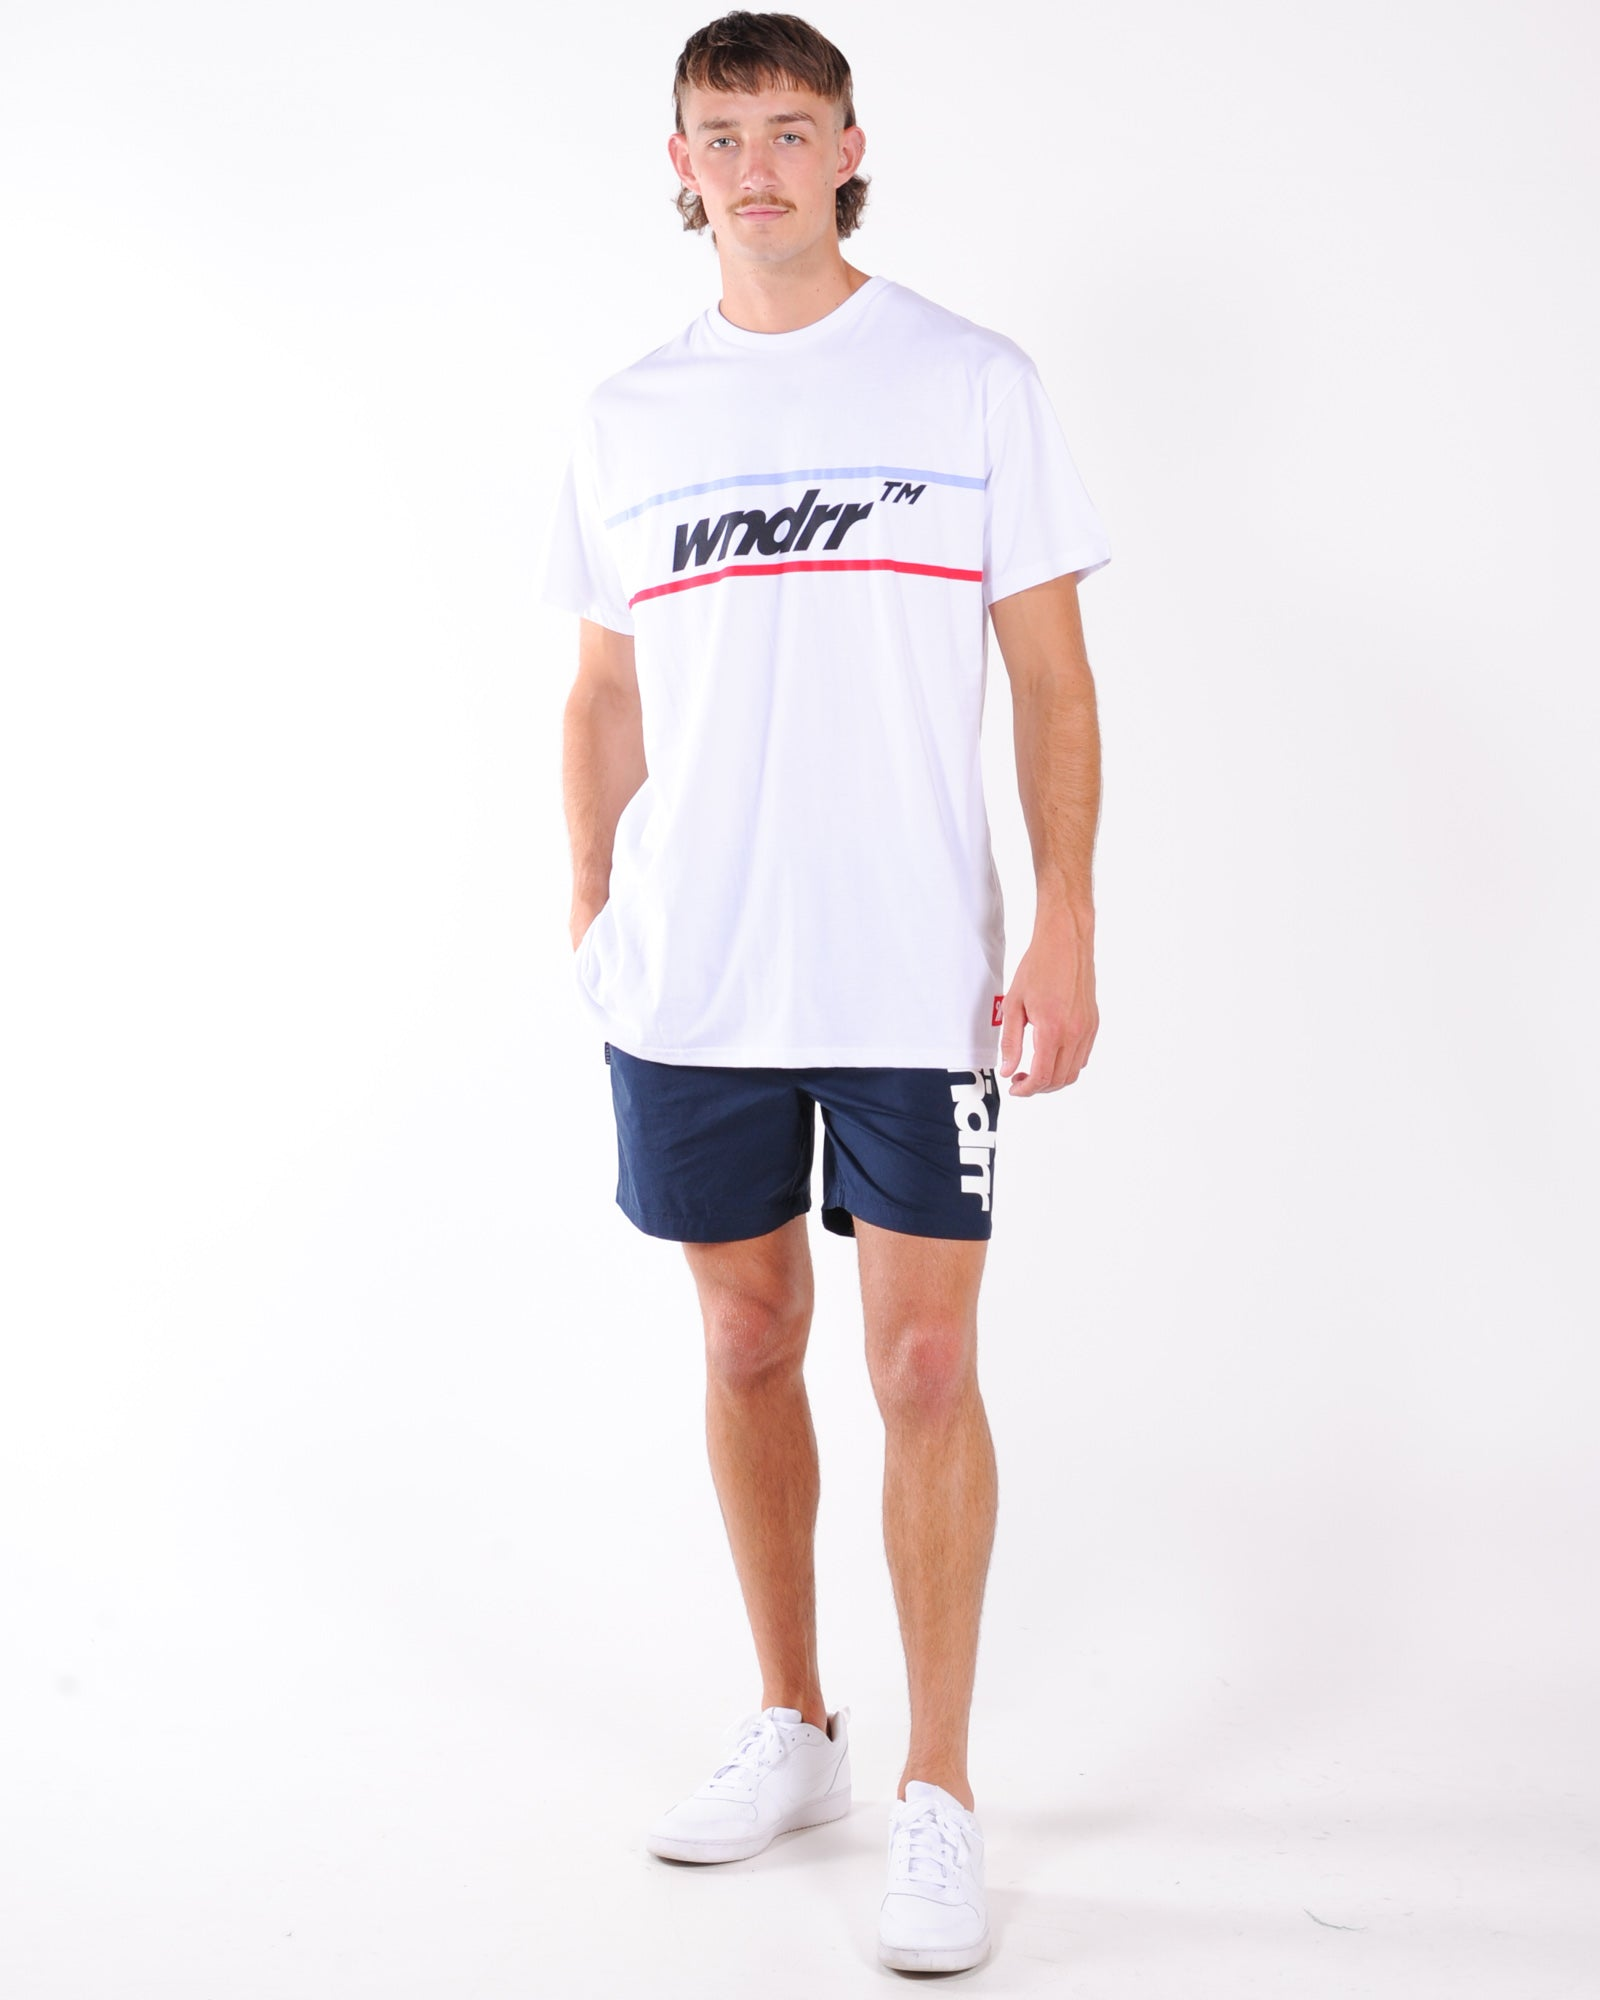 Wndrr Booker Custom Fit Tee - White